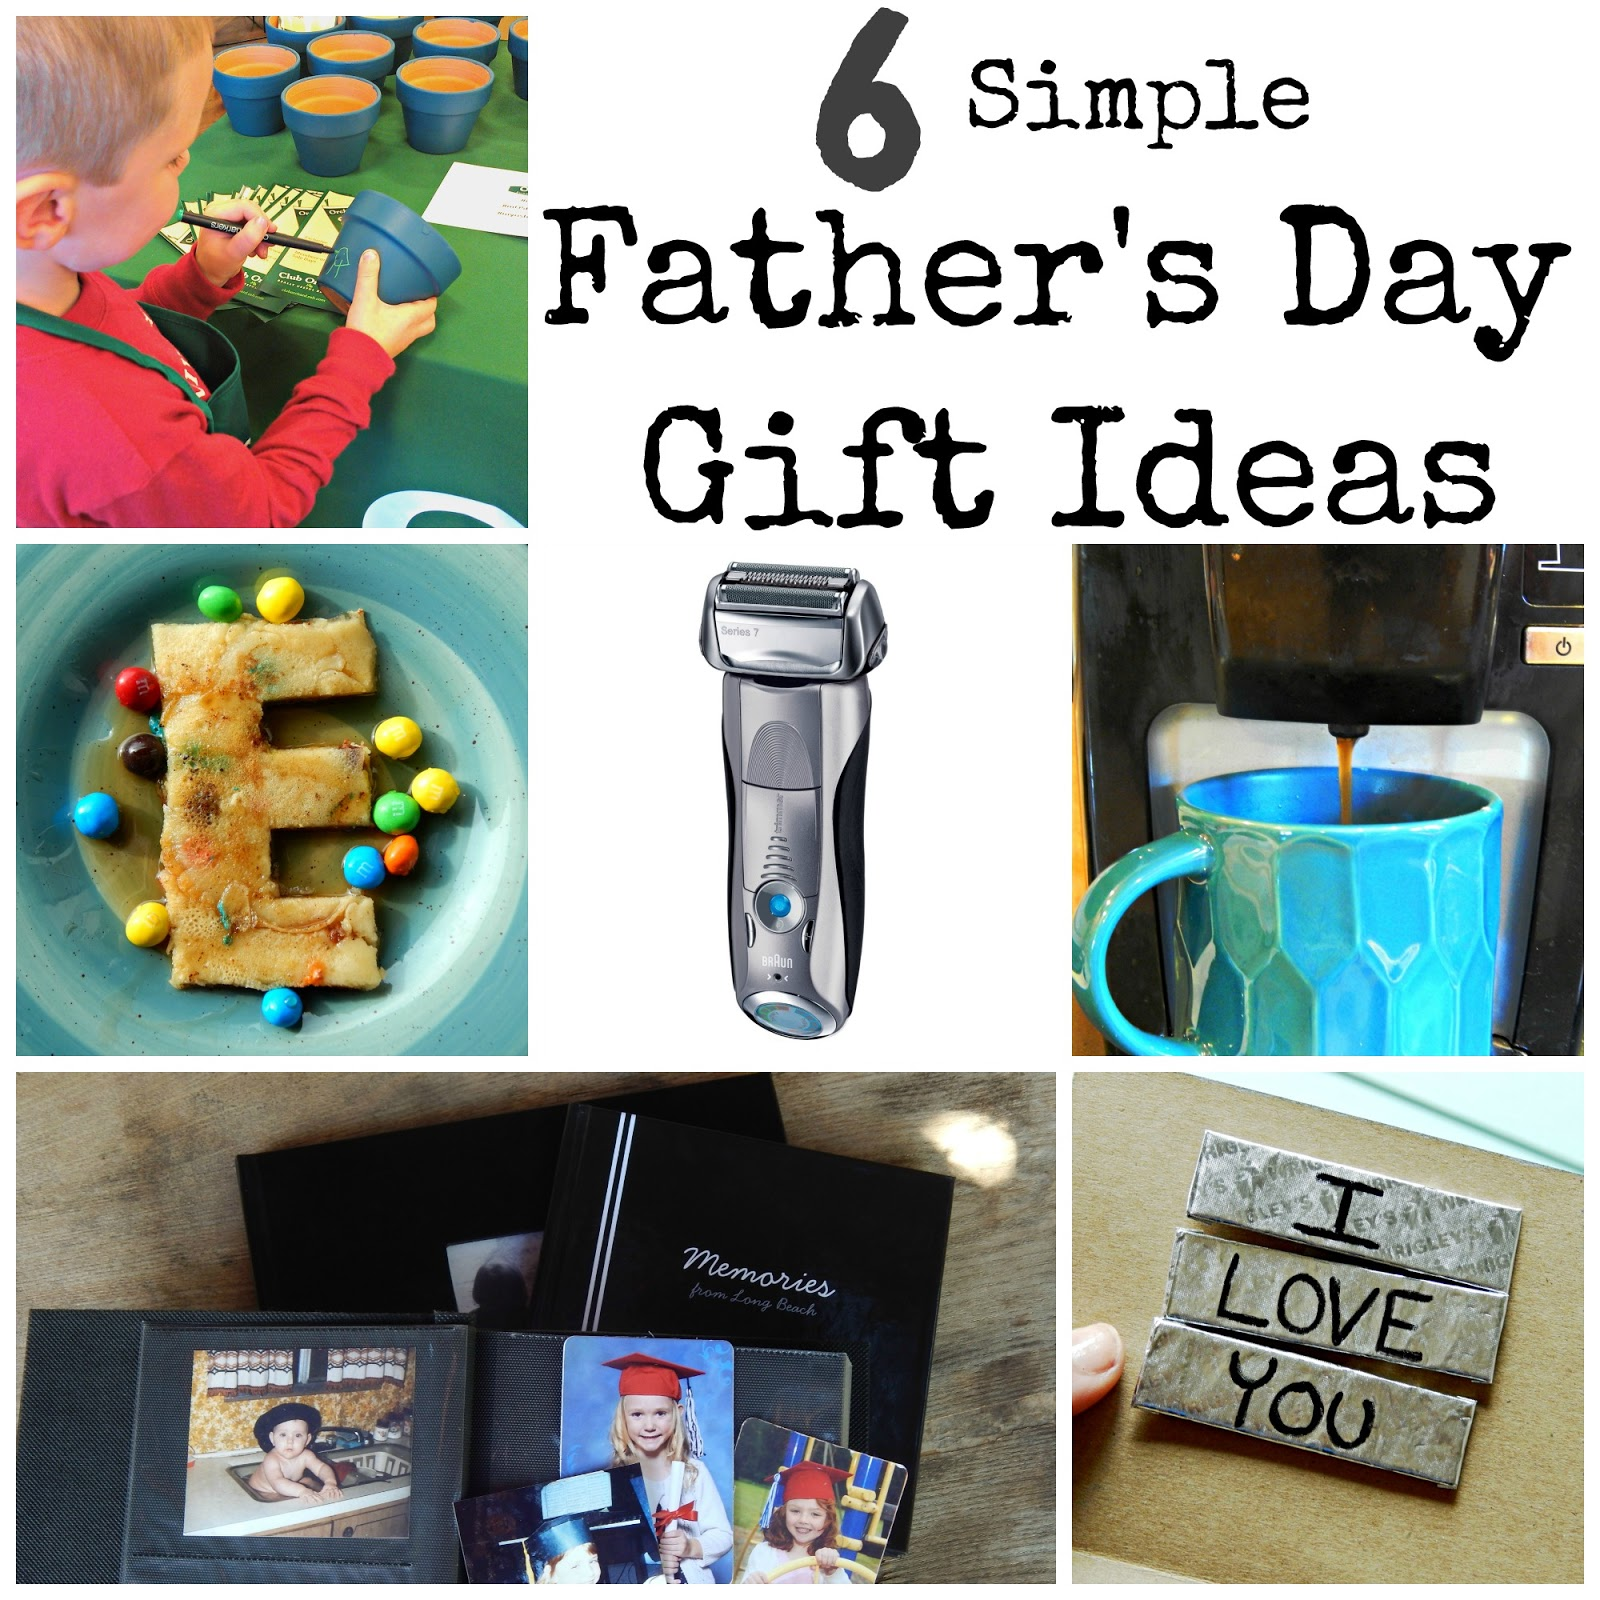 6 Simple Father's Day Gift Ideas